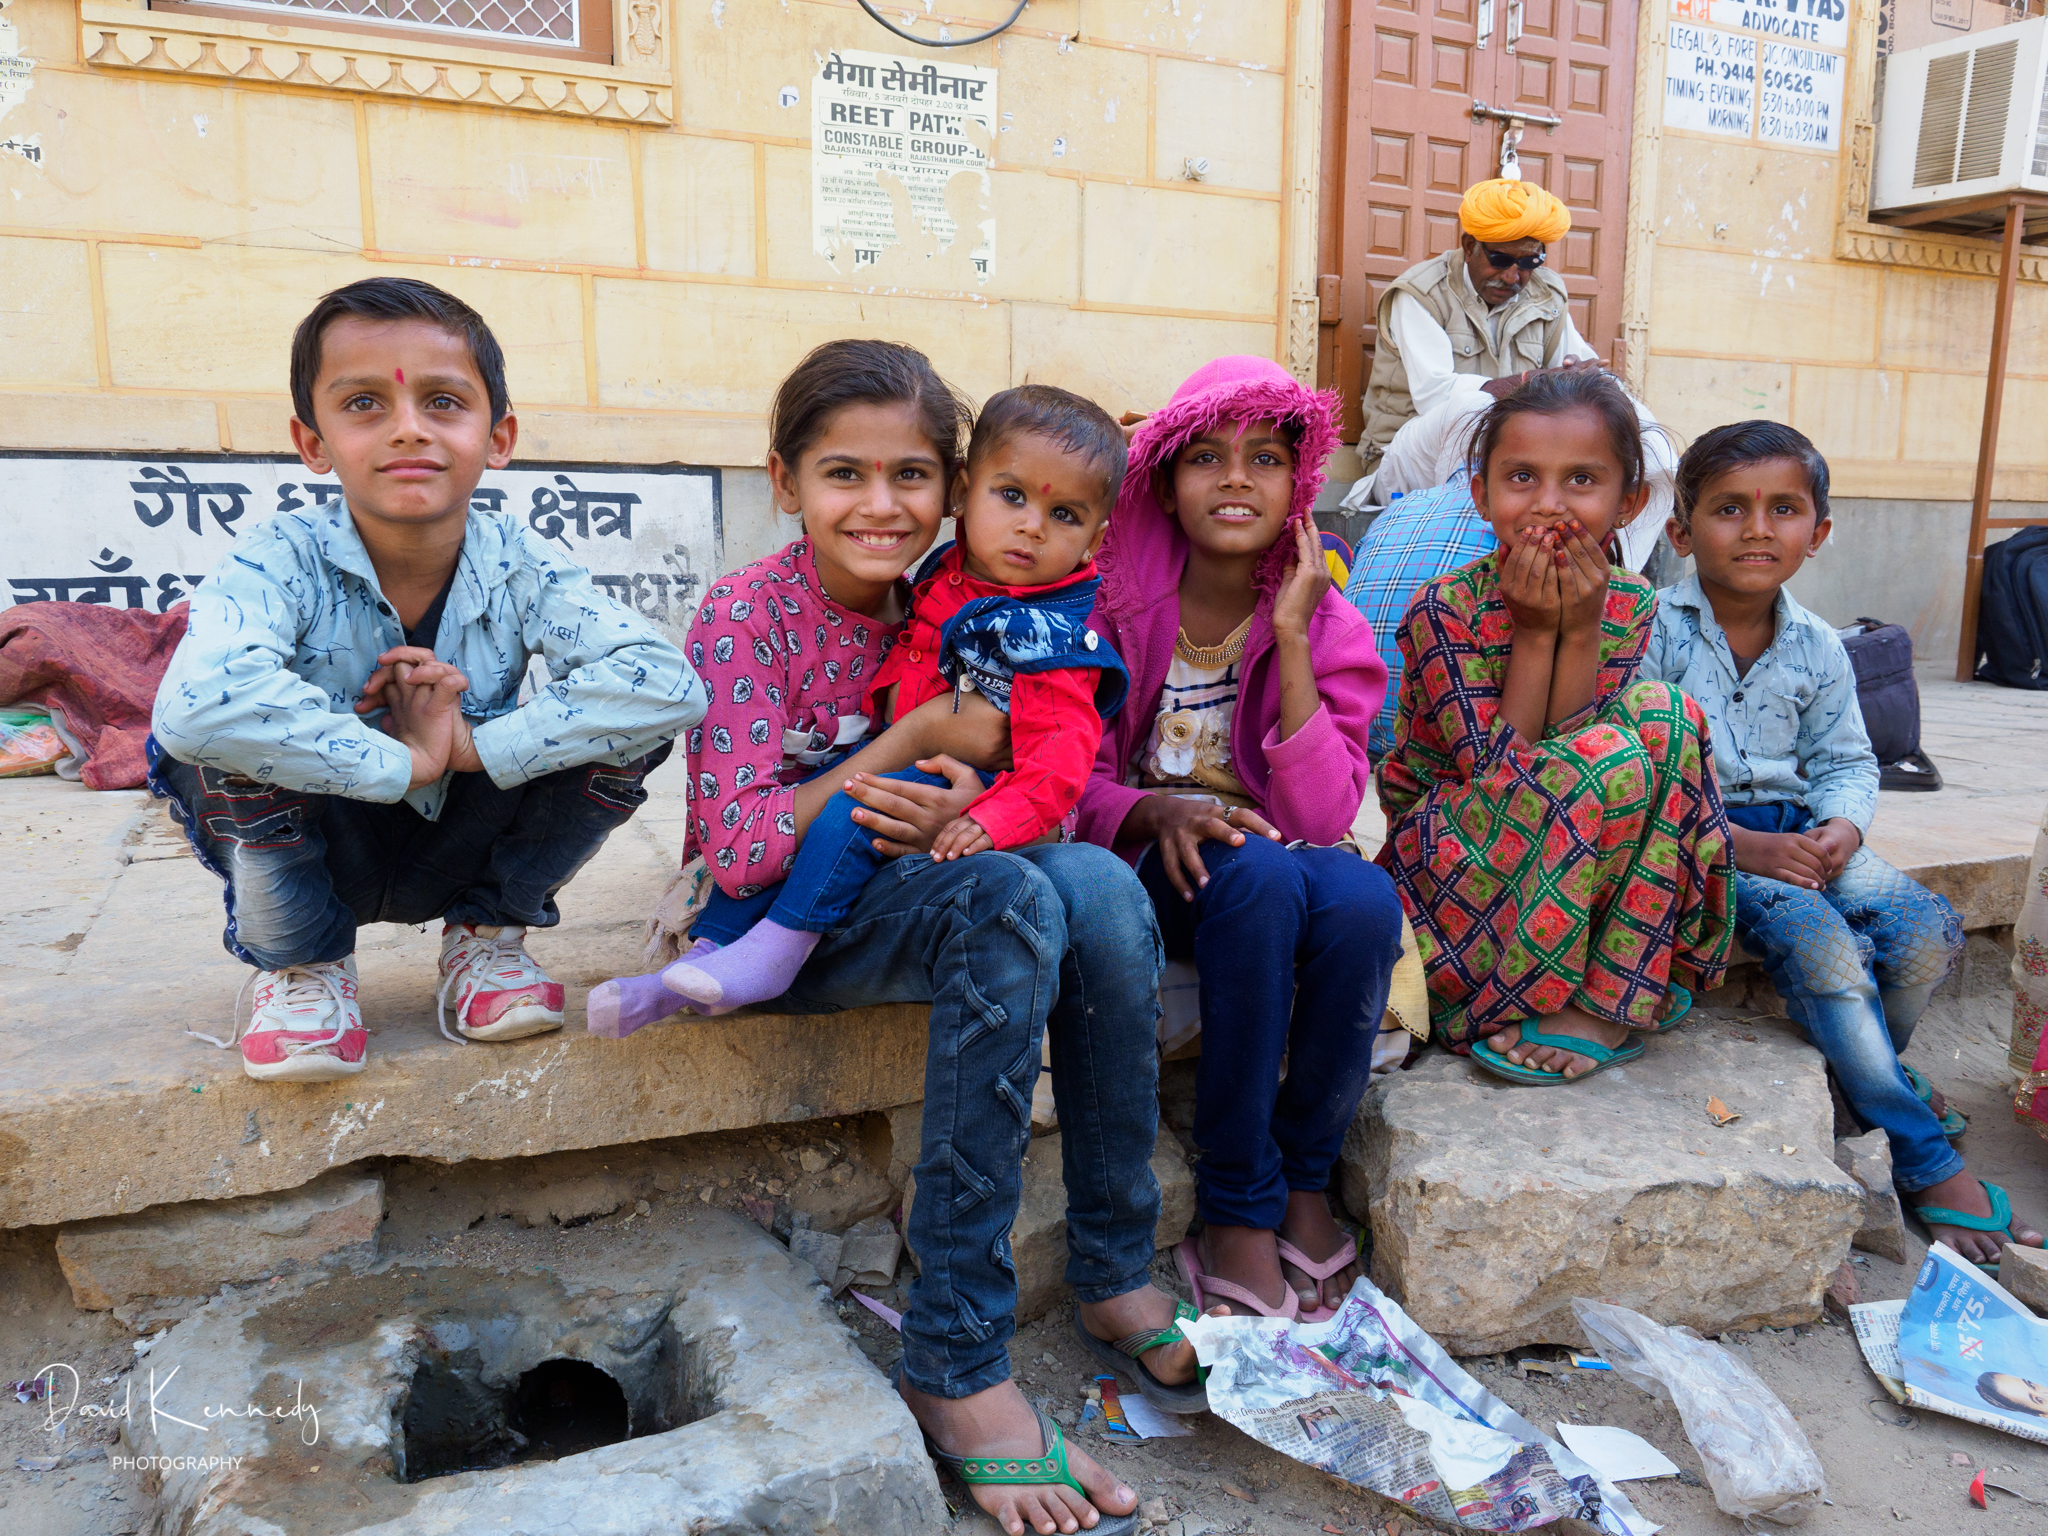 A group of happy children sat at the side of the road, Jaisalmer, India